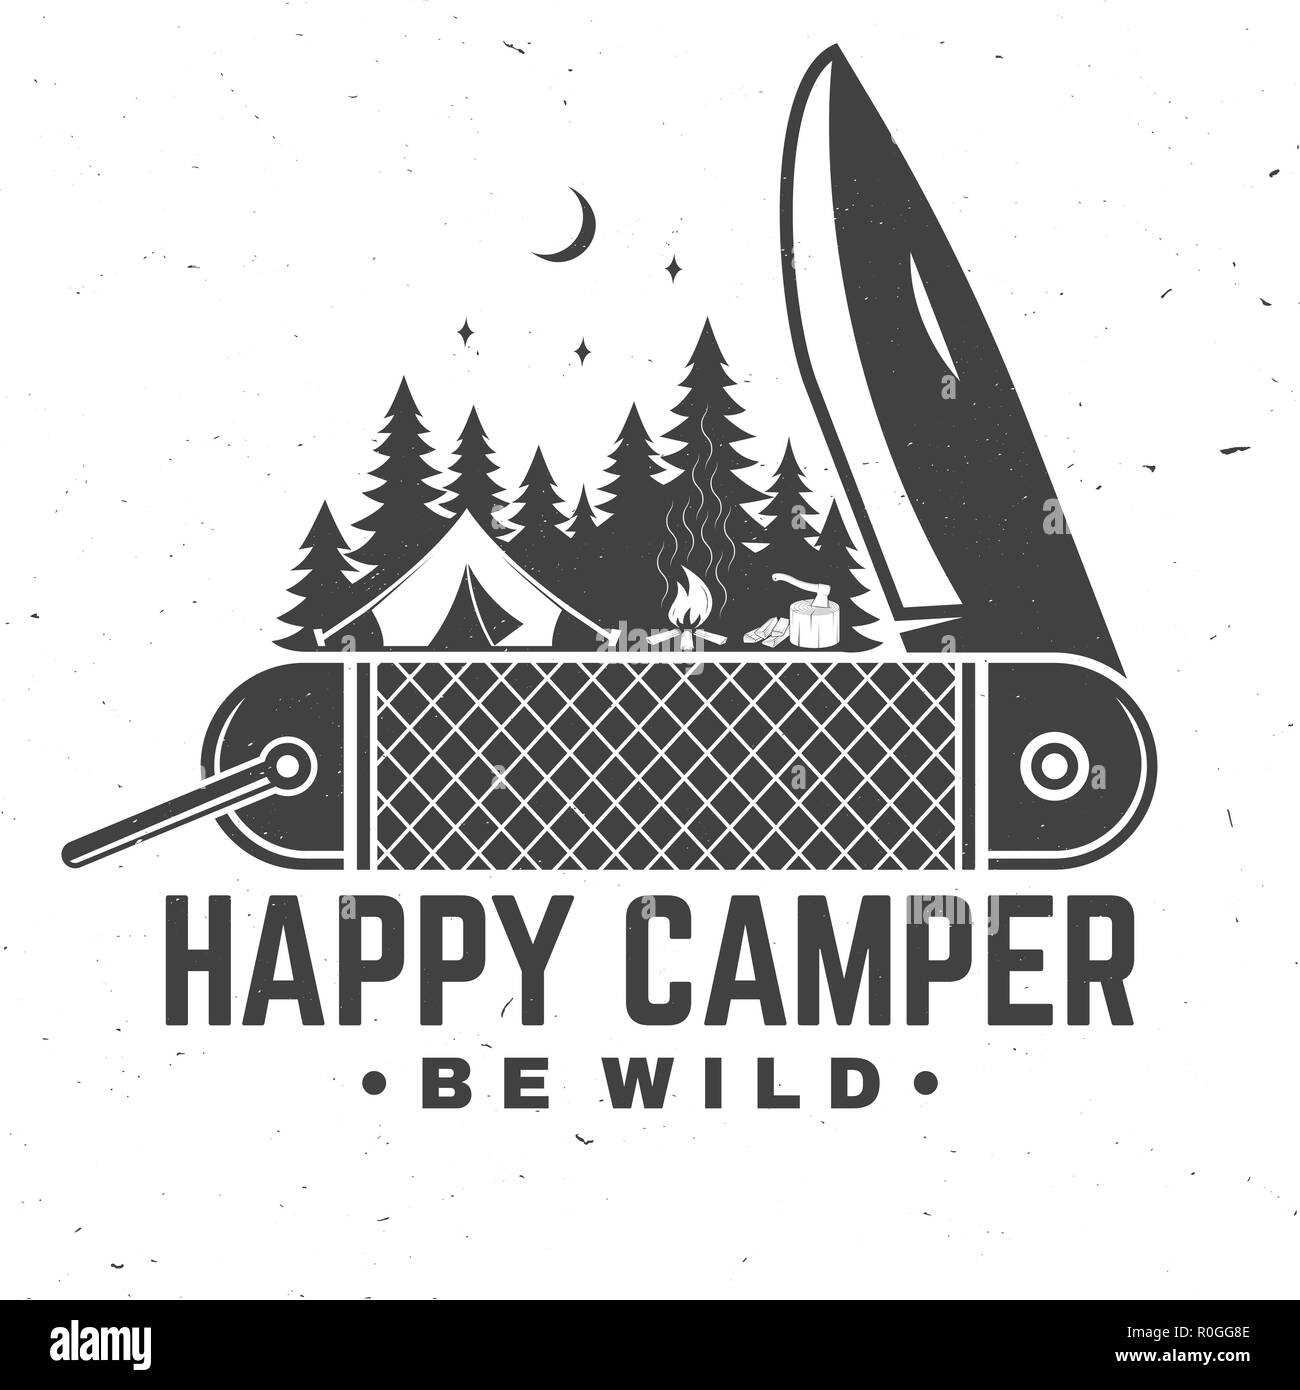 Happy camper. Be wild. Vector illustration. Concept for shirt or badge, overlay, print, stamp or tee. Vintage typography design with pocket knife, camping tent and forest silhouette in the night. - Stock Image